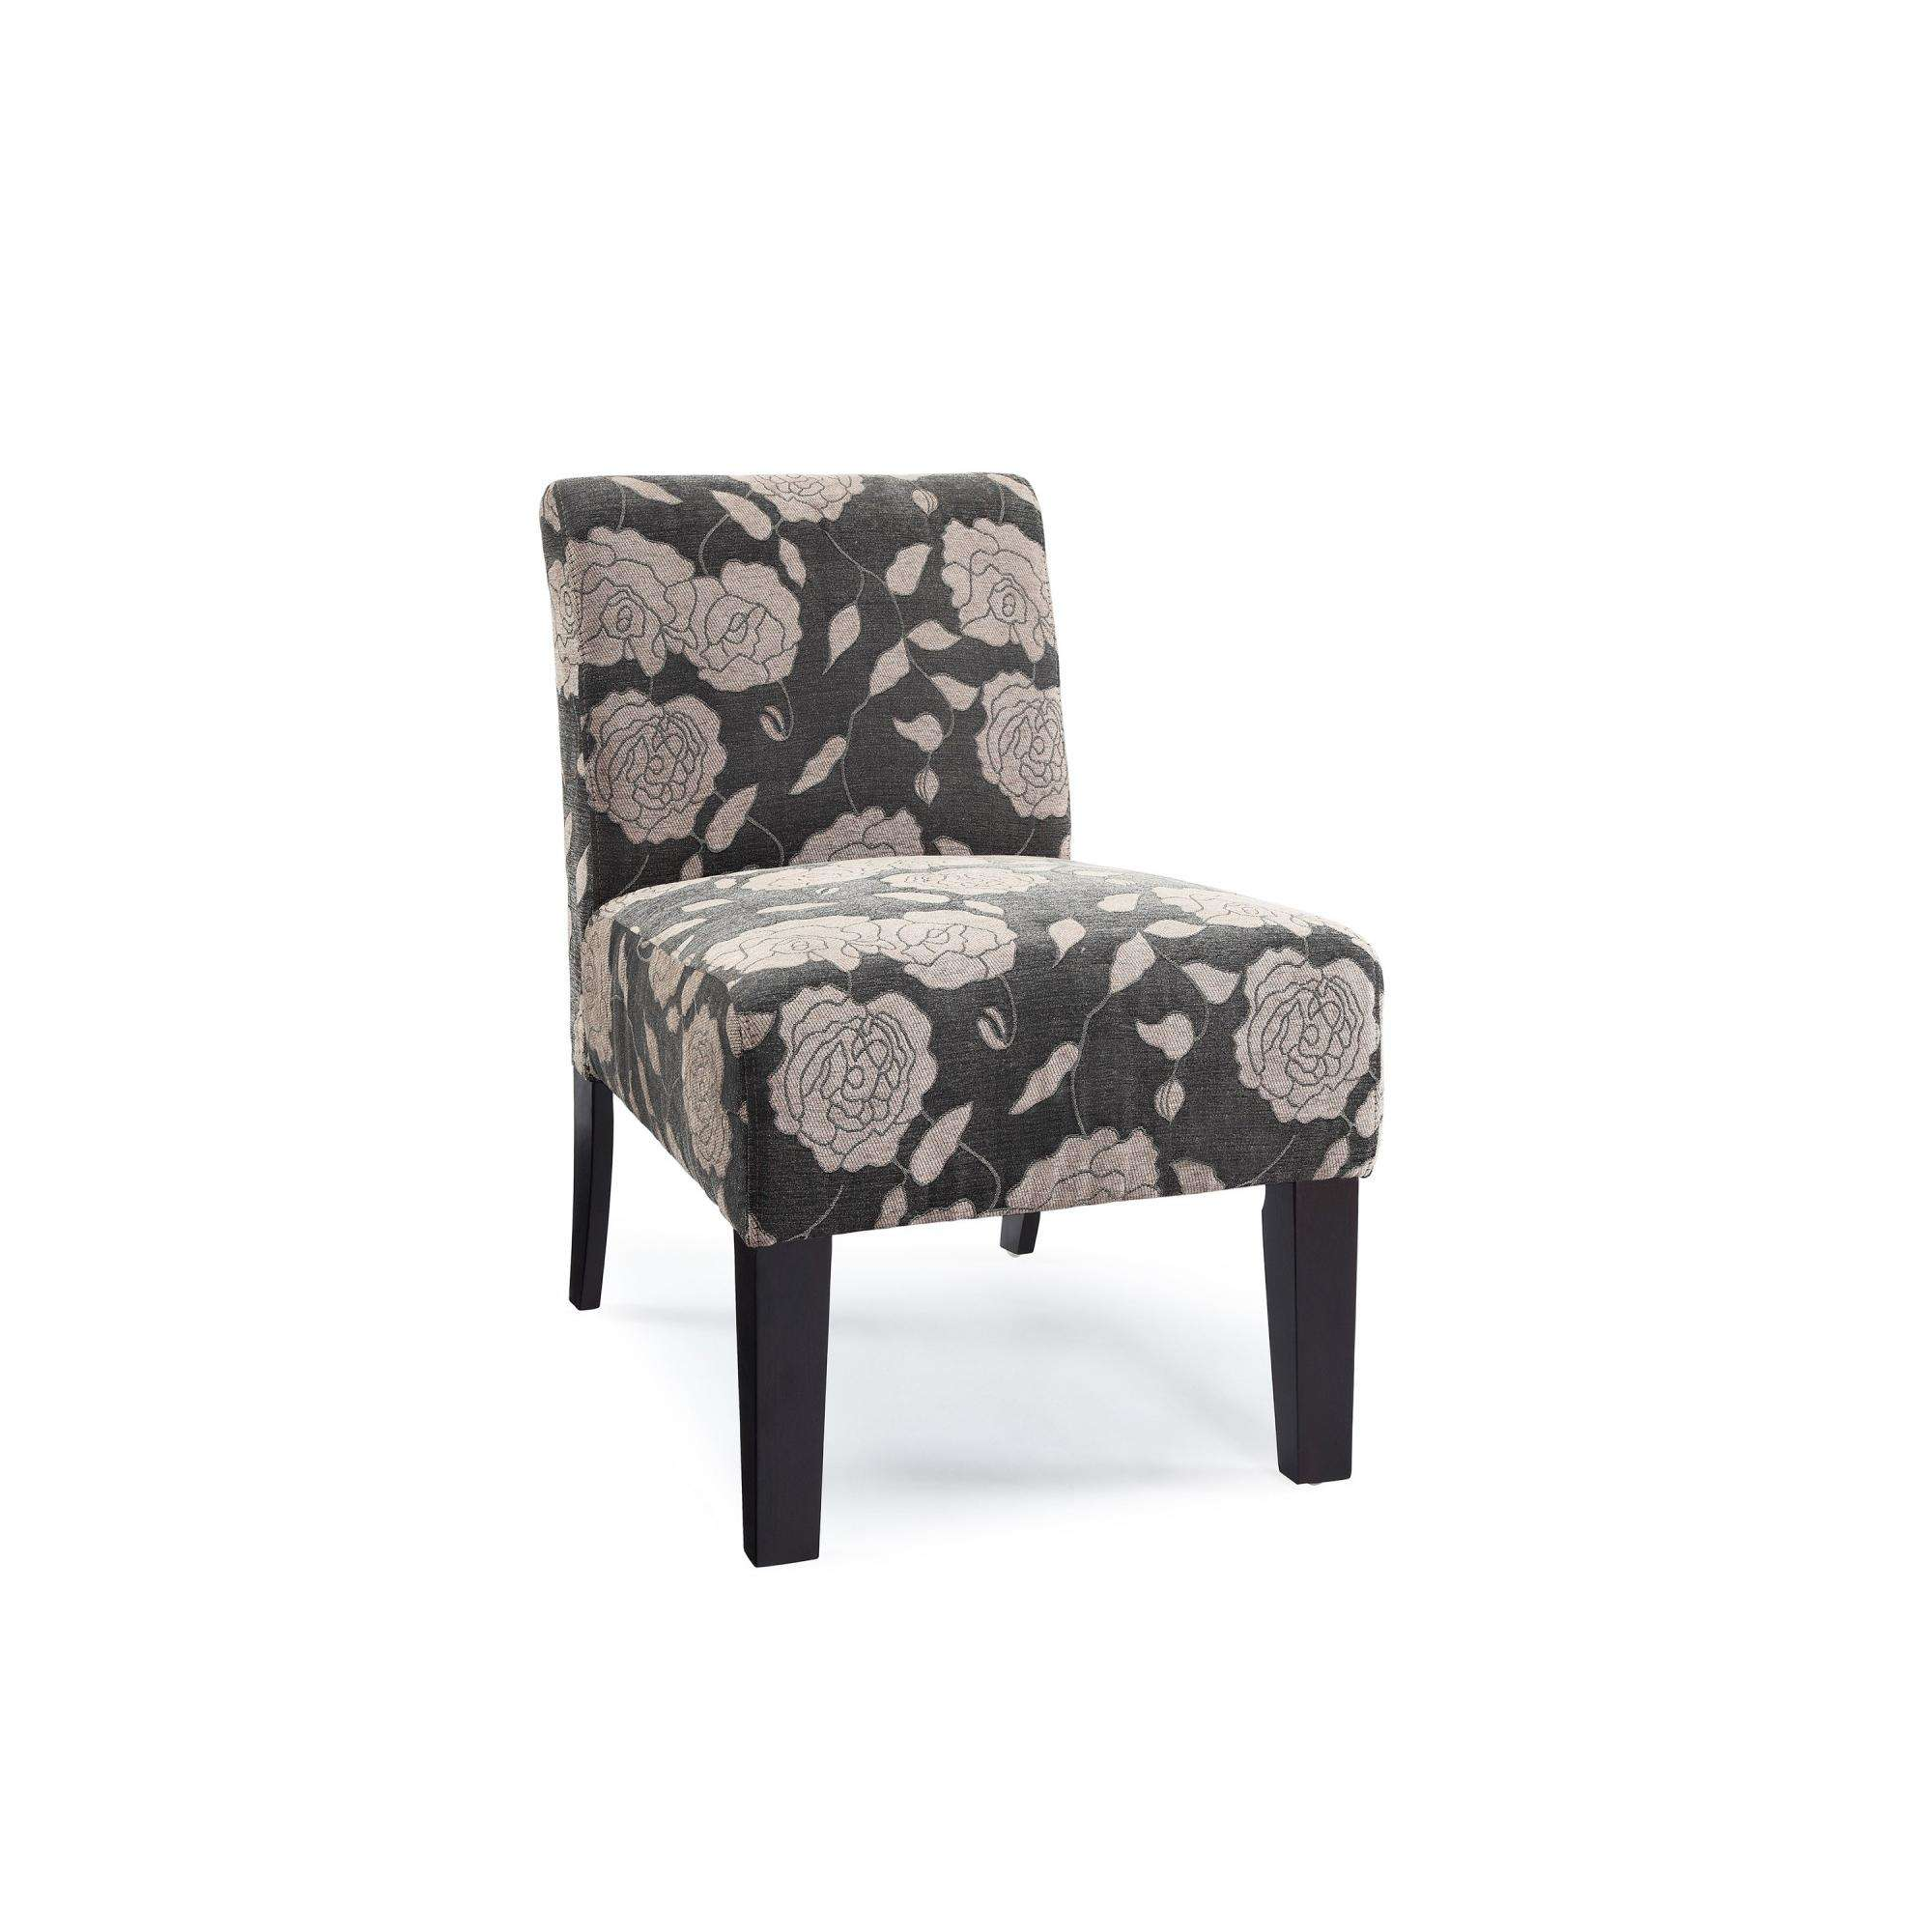 DHI Rose Deco Upholstered Accent Chair, Multiple Colors